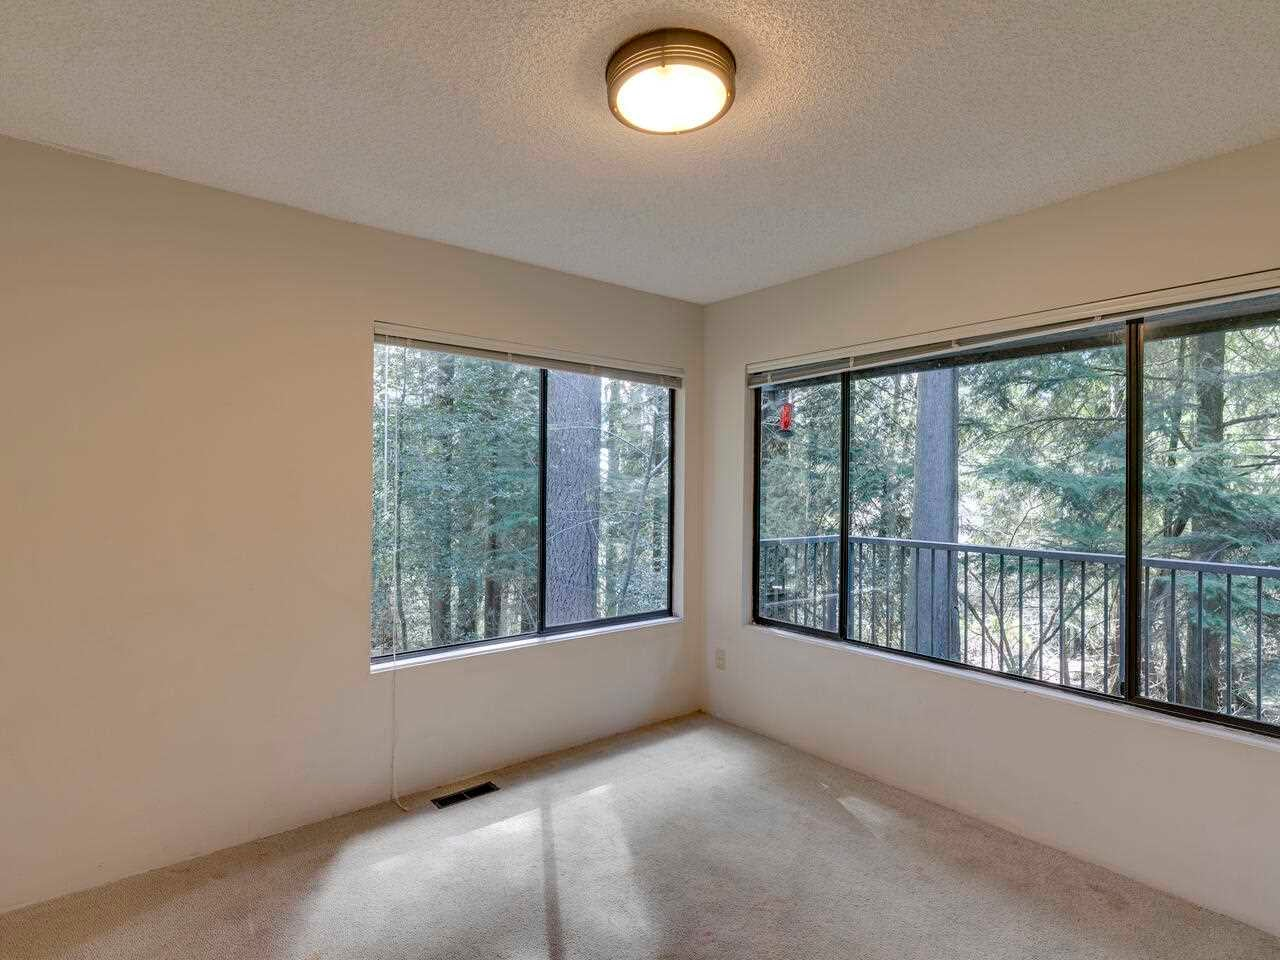 867 FREDERICK ROAD - Lynn Valley Townhouse for sale, 3 Bedrooms (R2569757) - #17